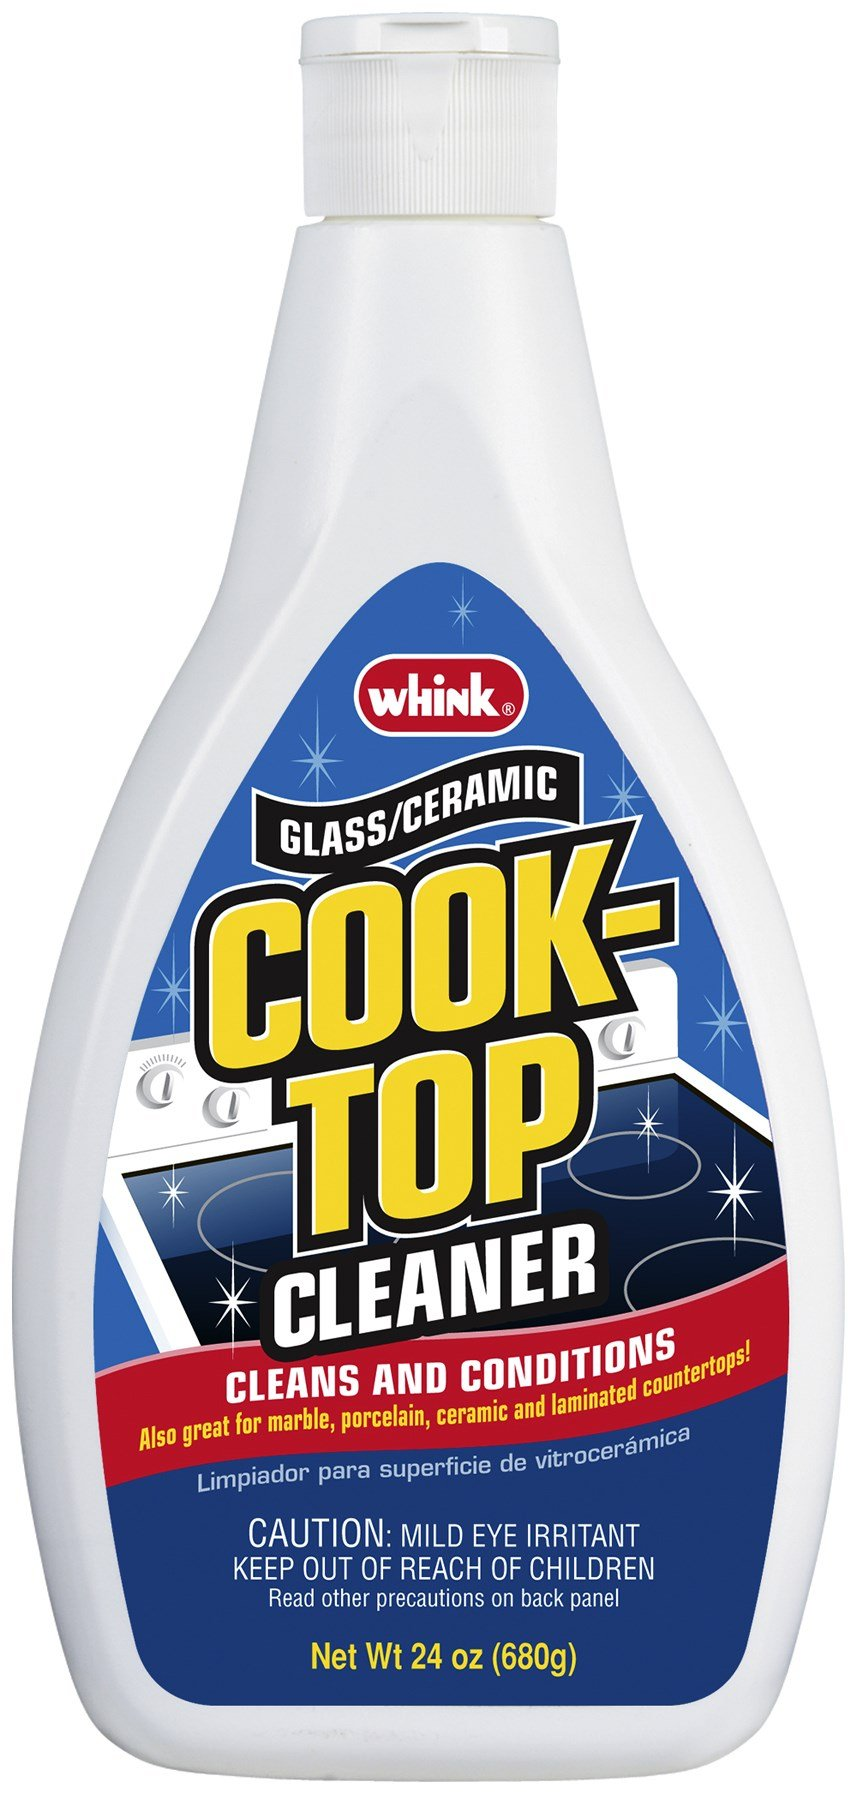 Whink Glass/Ceramic Cook-Top Cleaner, 24 Ounce (Pack of 6) by Whink